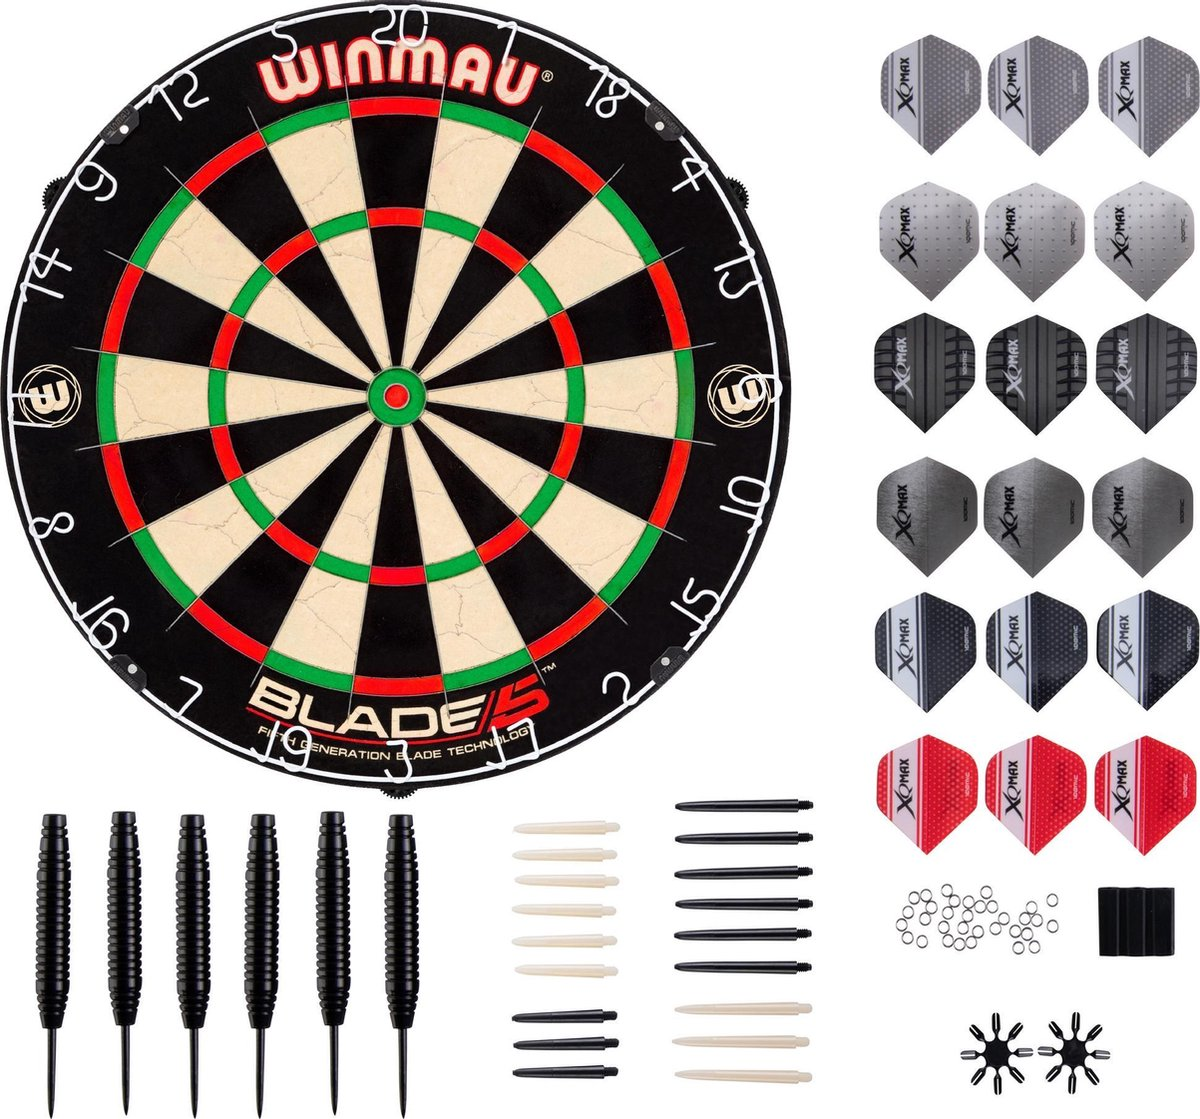 Winmau Blade 5 Dartbord + 2 Sets Steeldarts + 90 Pieces